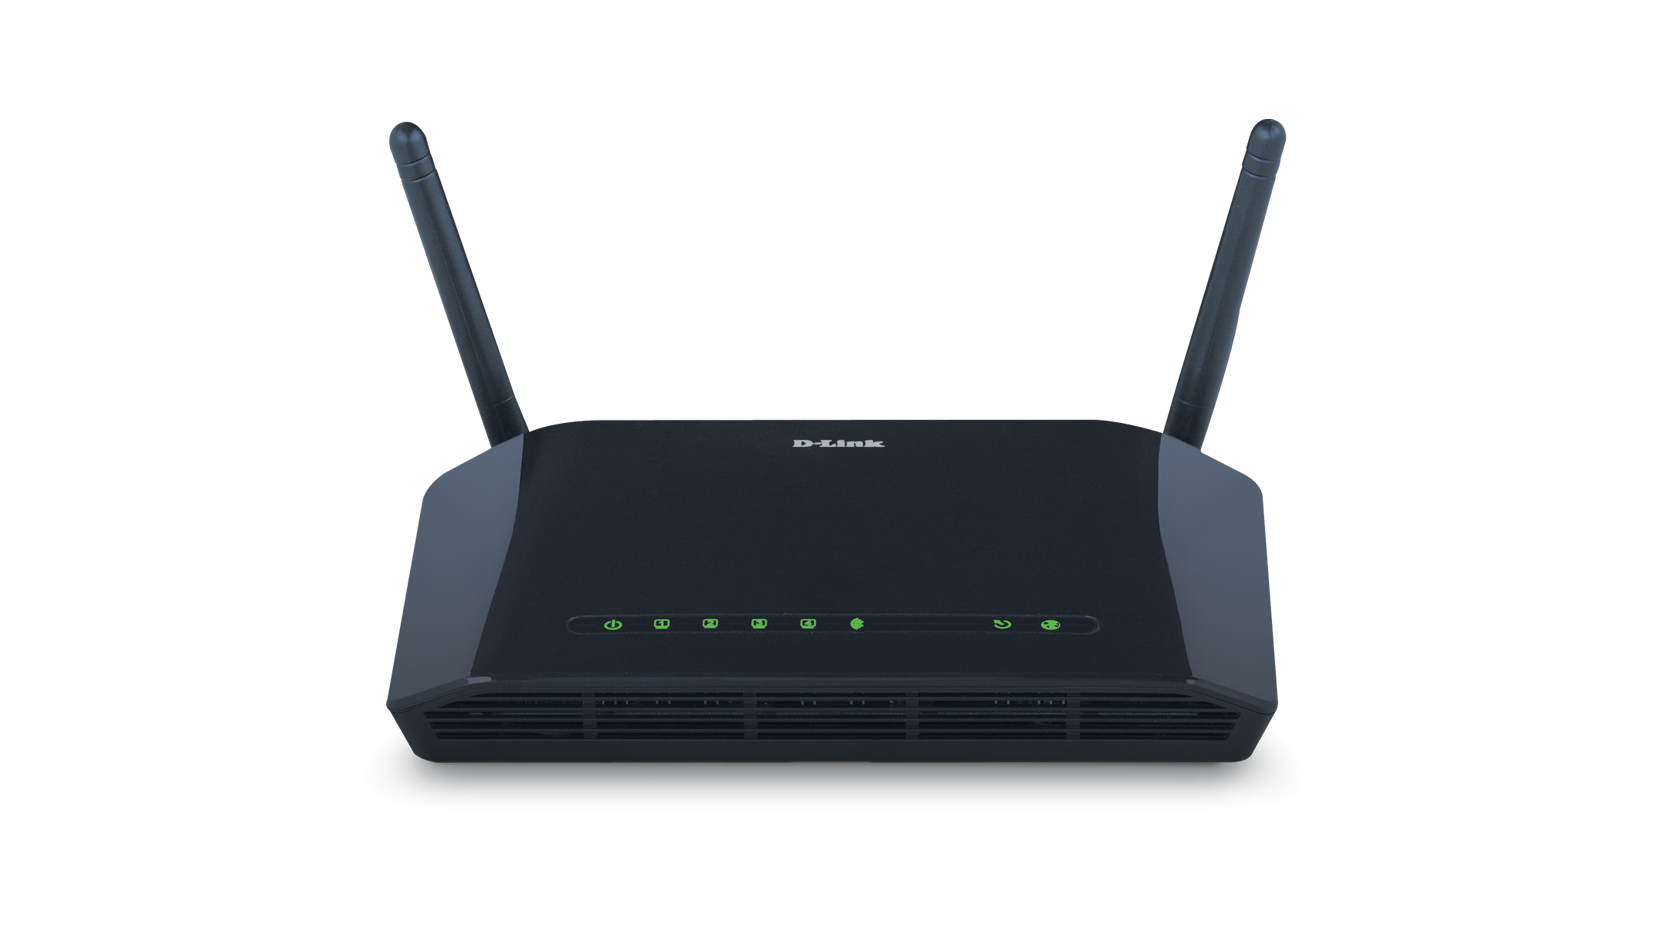 The Best Cable Modem